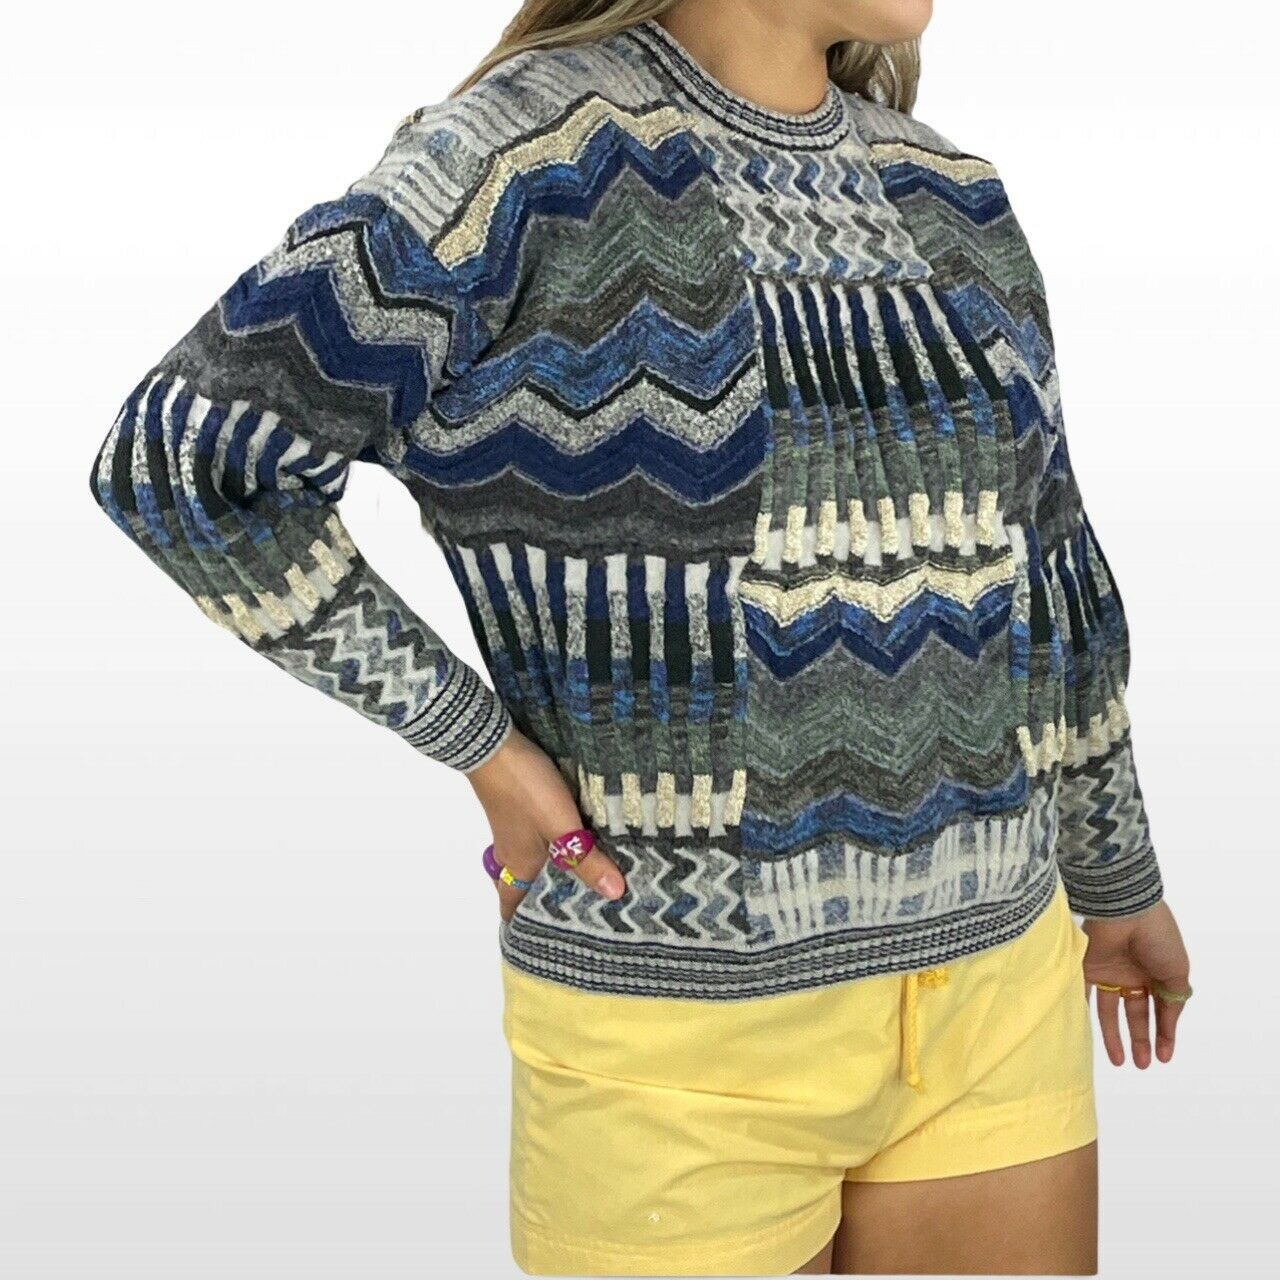 Abstract textured knit sweater - image 1